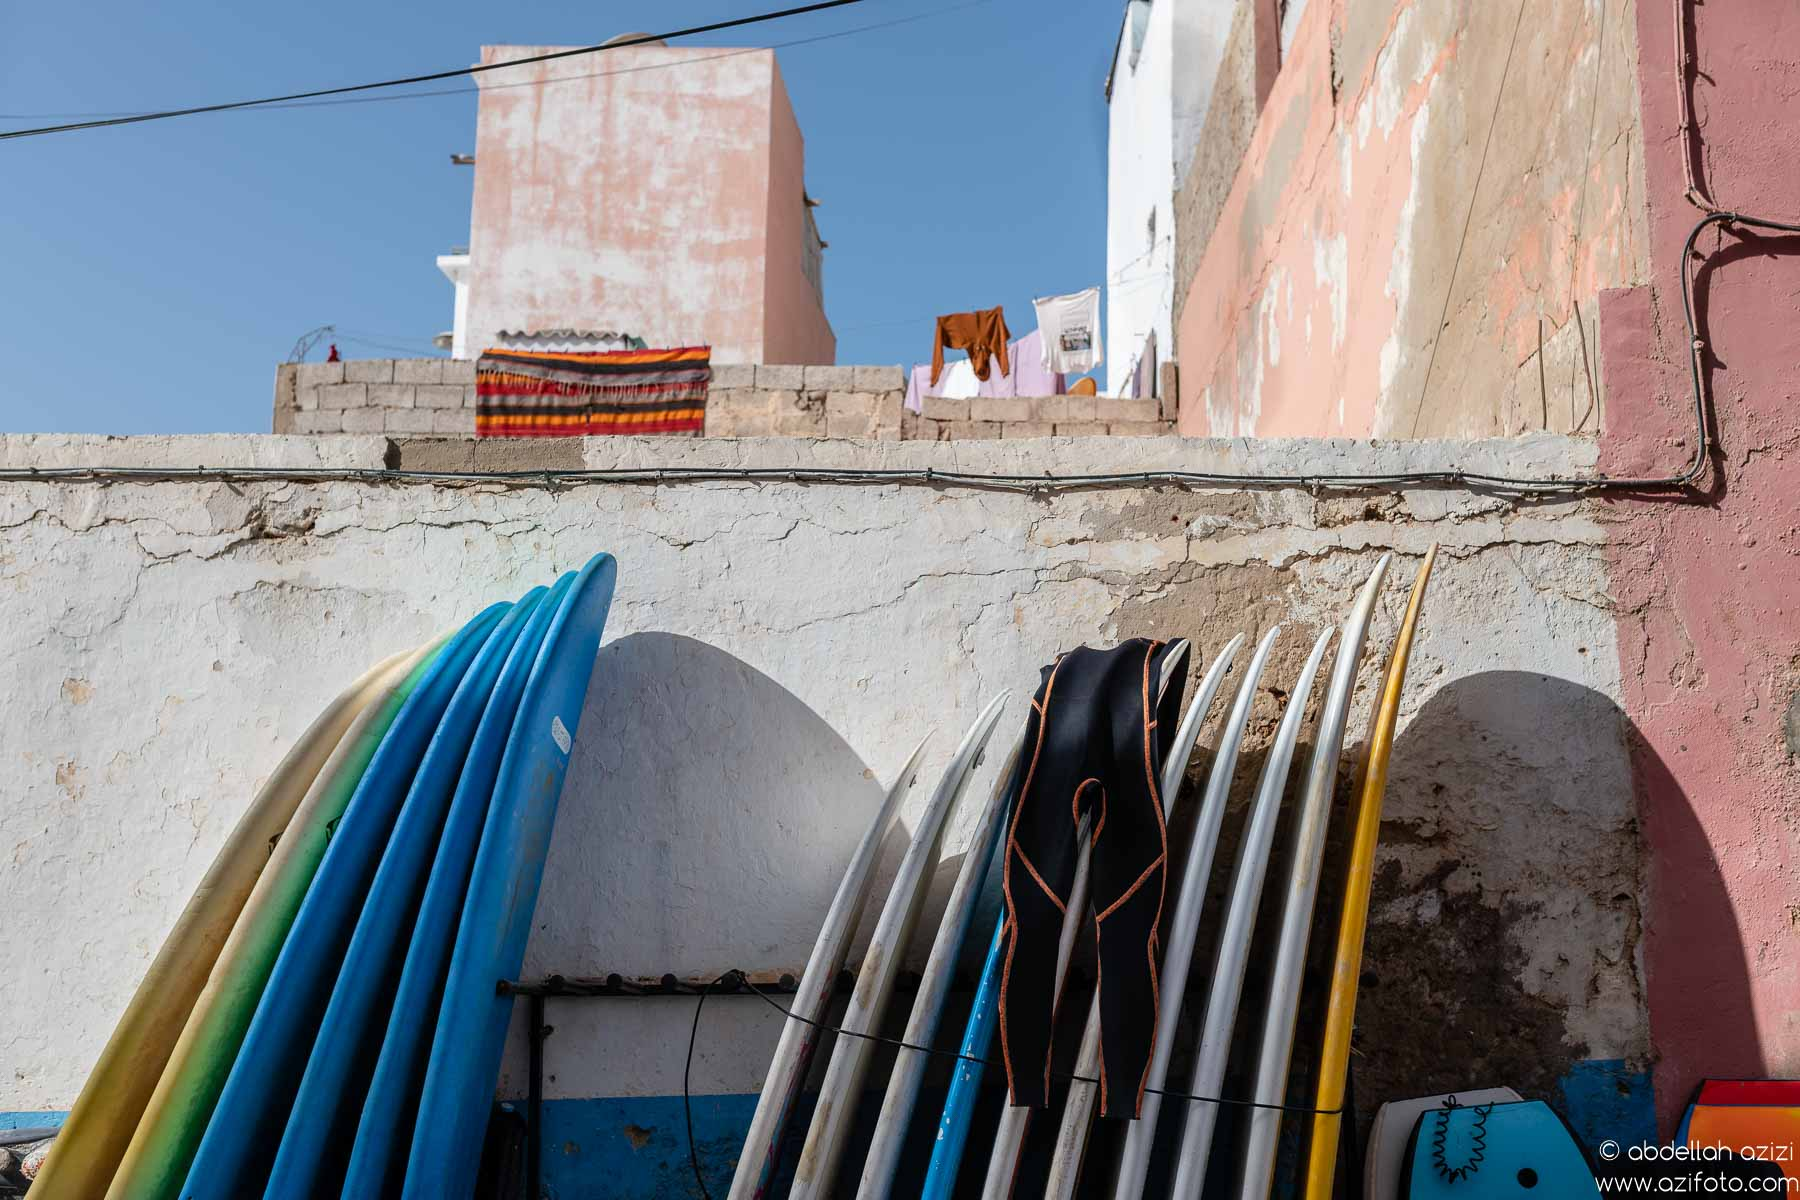 Taghazout village, Morocco